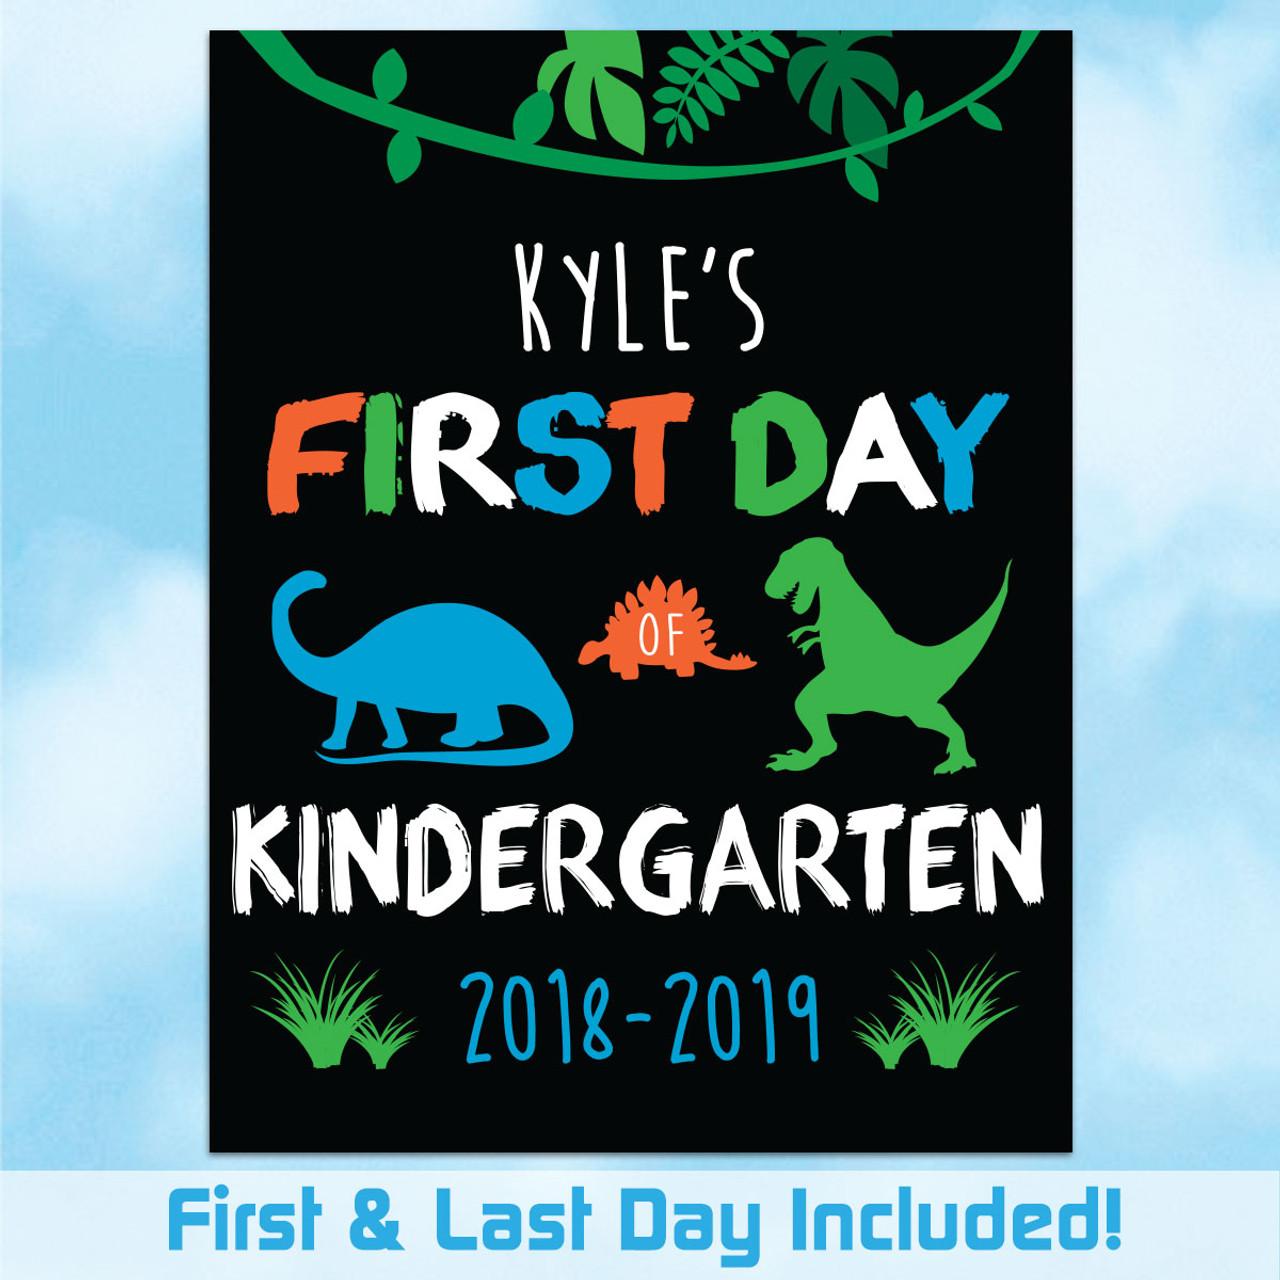 photograph regarding First Day of Kindergarten Sign Printable titled Custom-made Printable Dinosaur 1st Very last Working day of Faculty Indicator